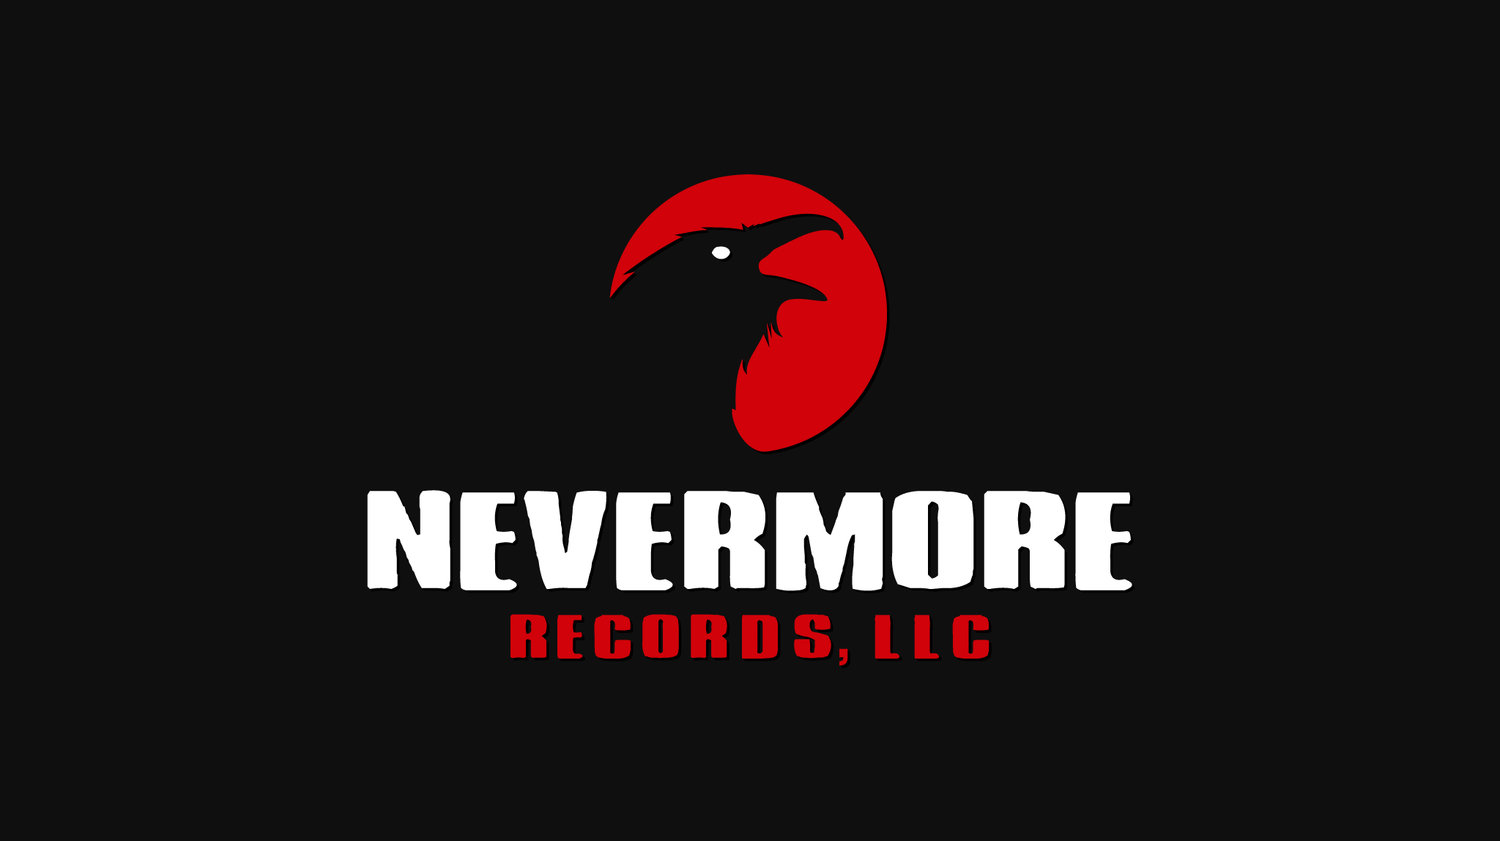 Nevermore Records, LLC